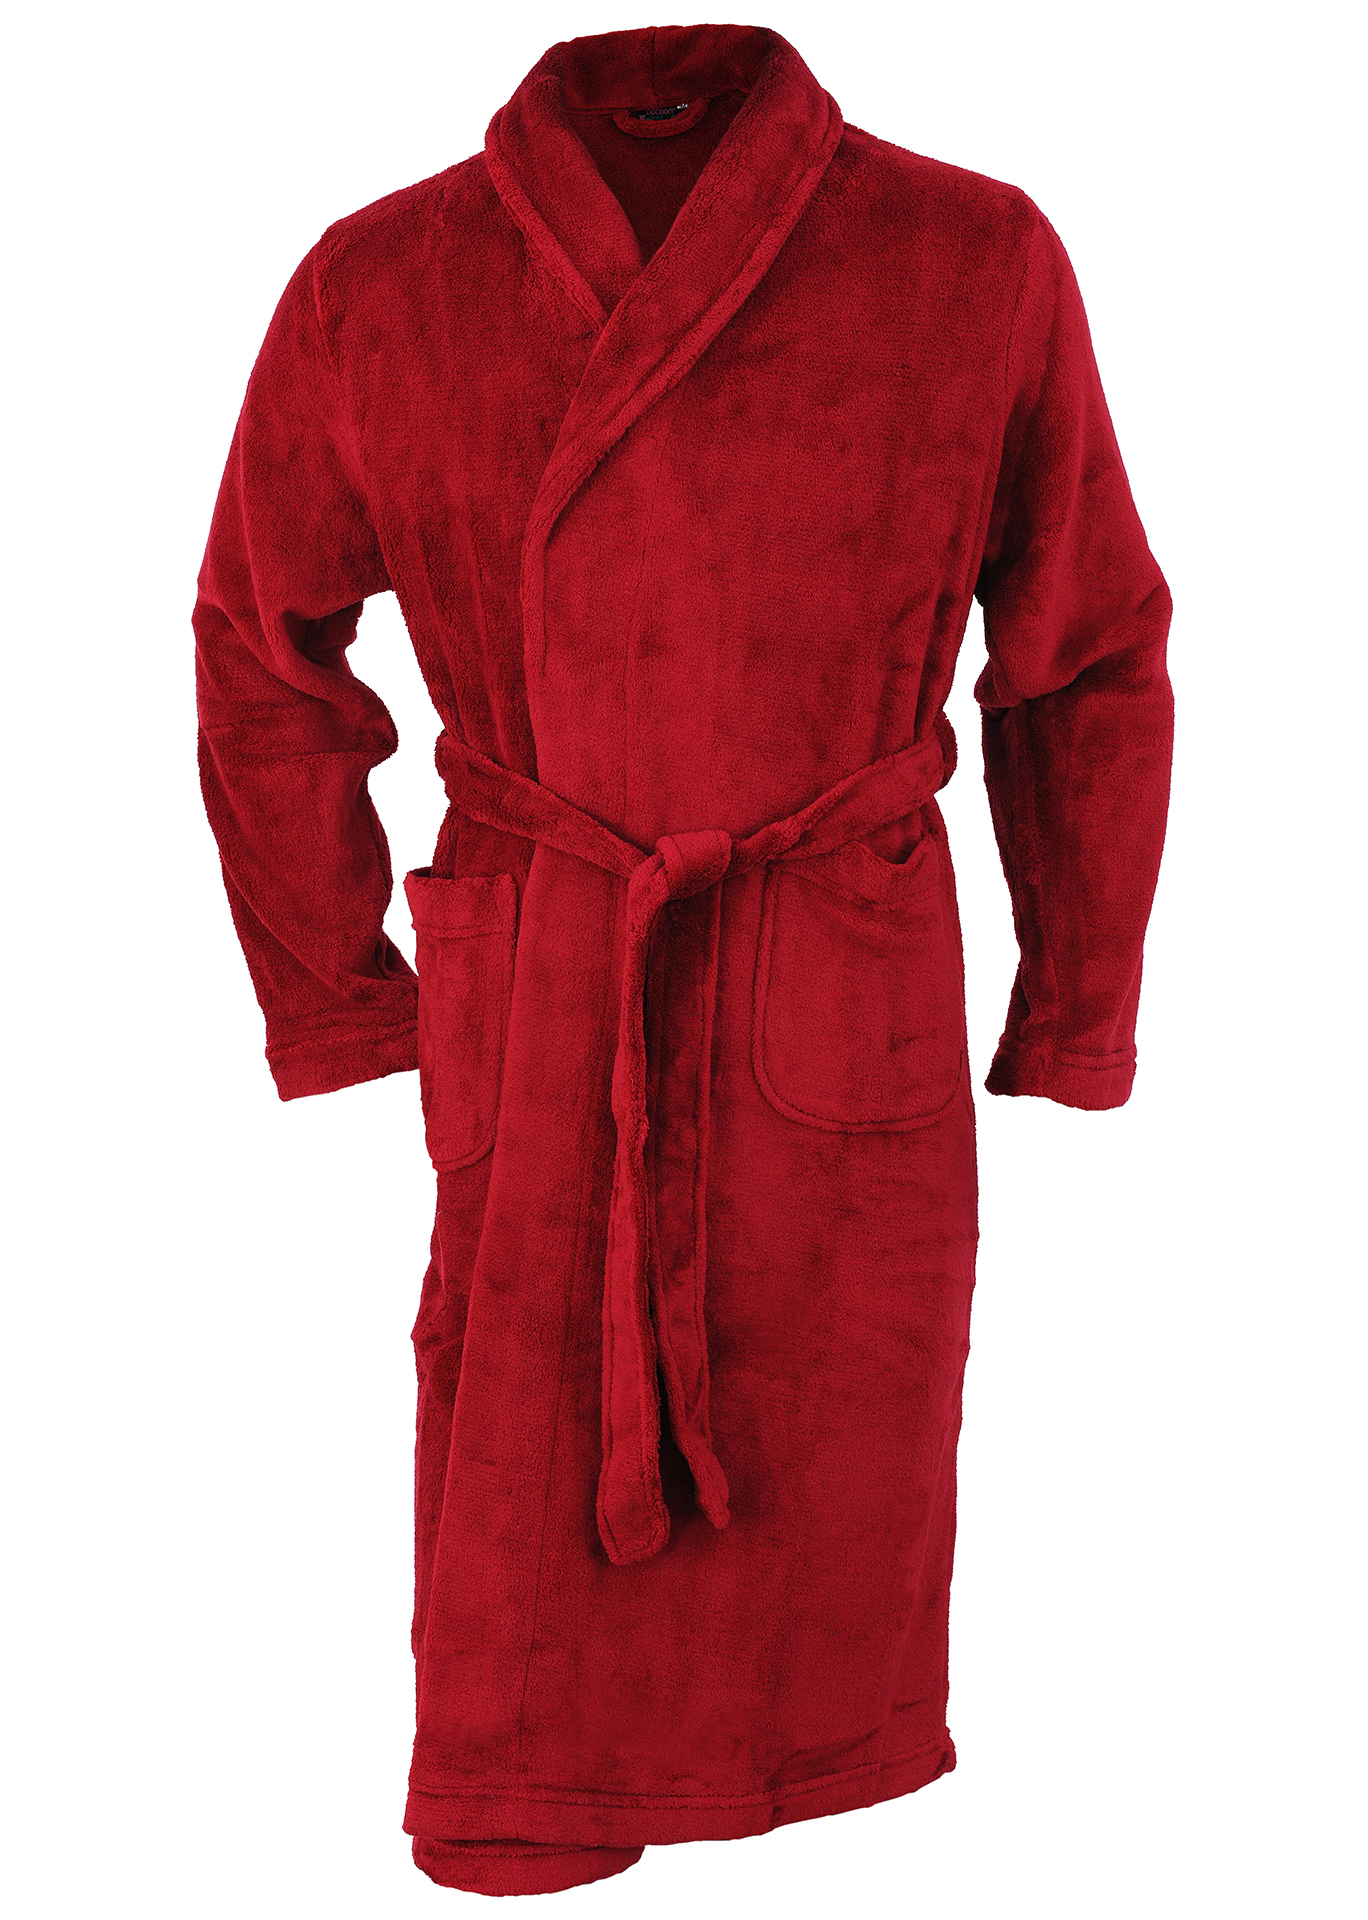 Bath Robes Comfort bordeaux